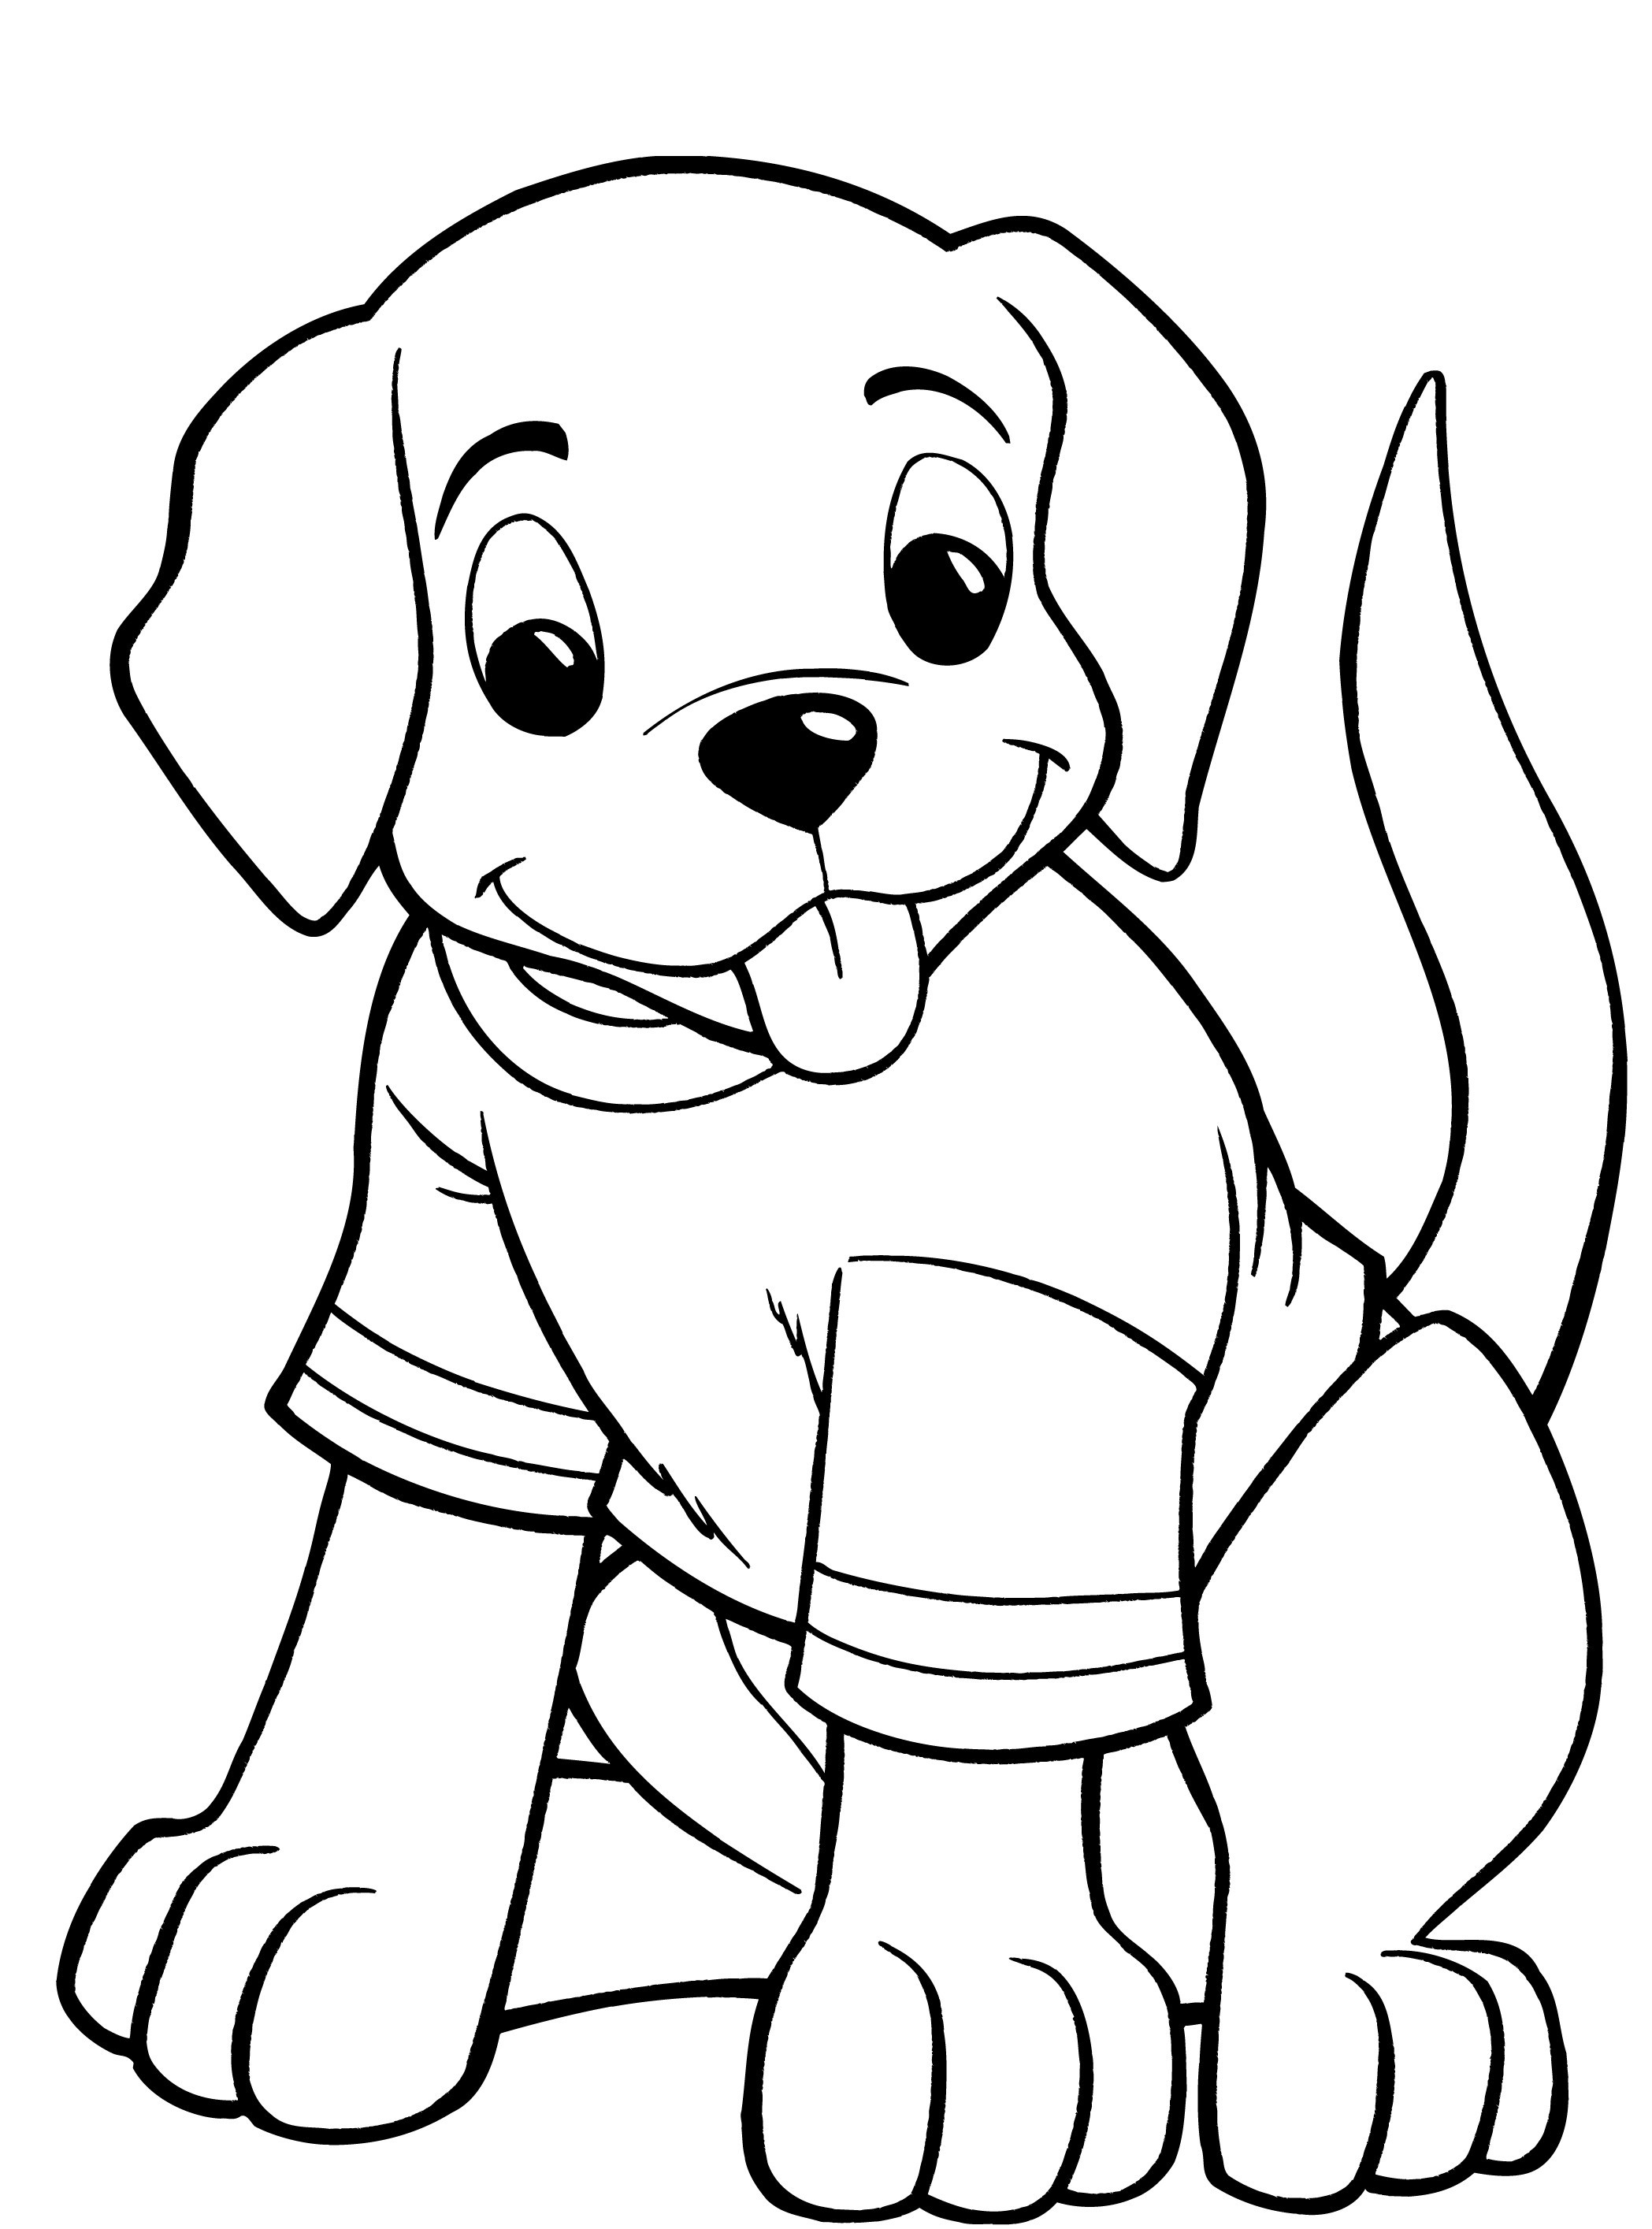 beagle puppy coloring pages beagle coloring pages best coloring pages for kids beagle puppy coloring pages